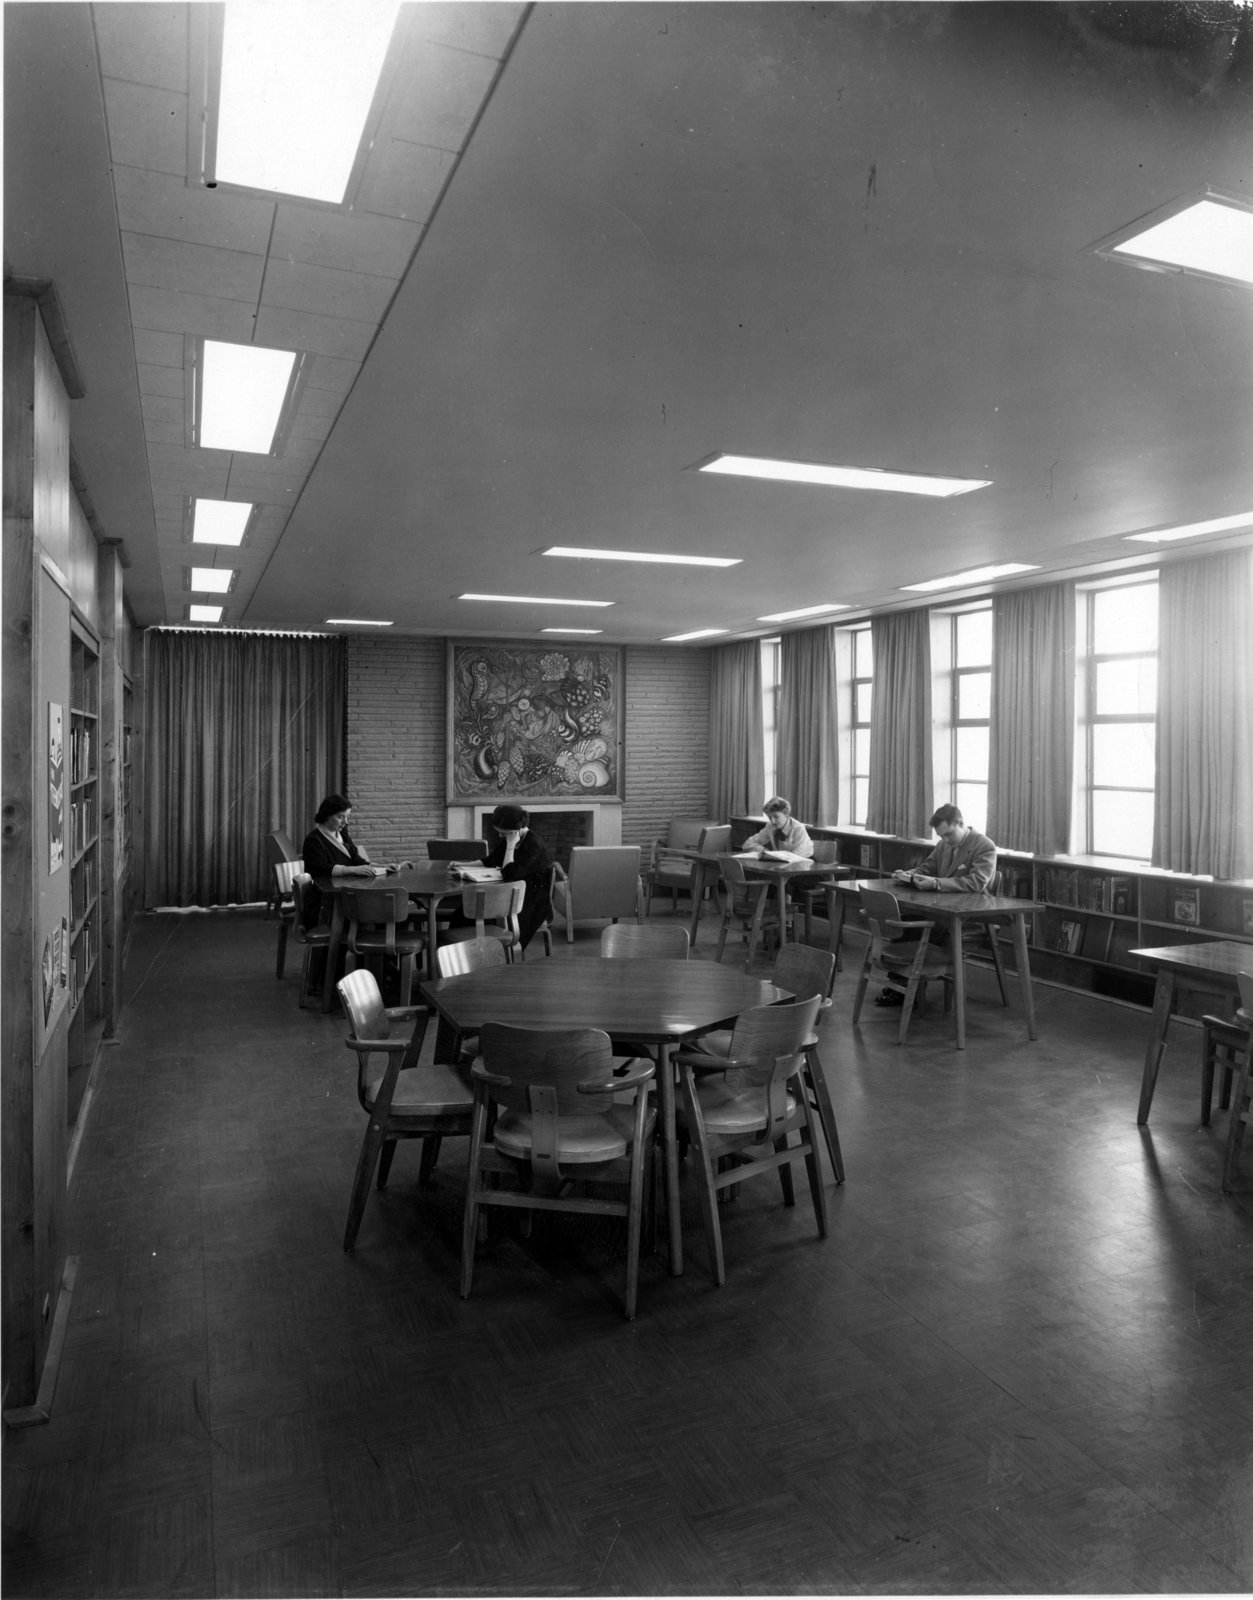 Private Library Study Rooms: LH2970 Oshawa Public Libraries, McLaughlin Branch, 1958